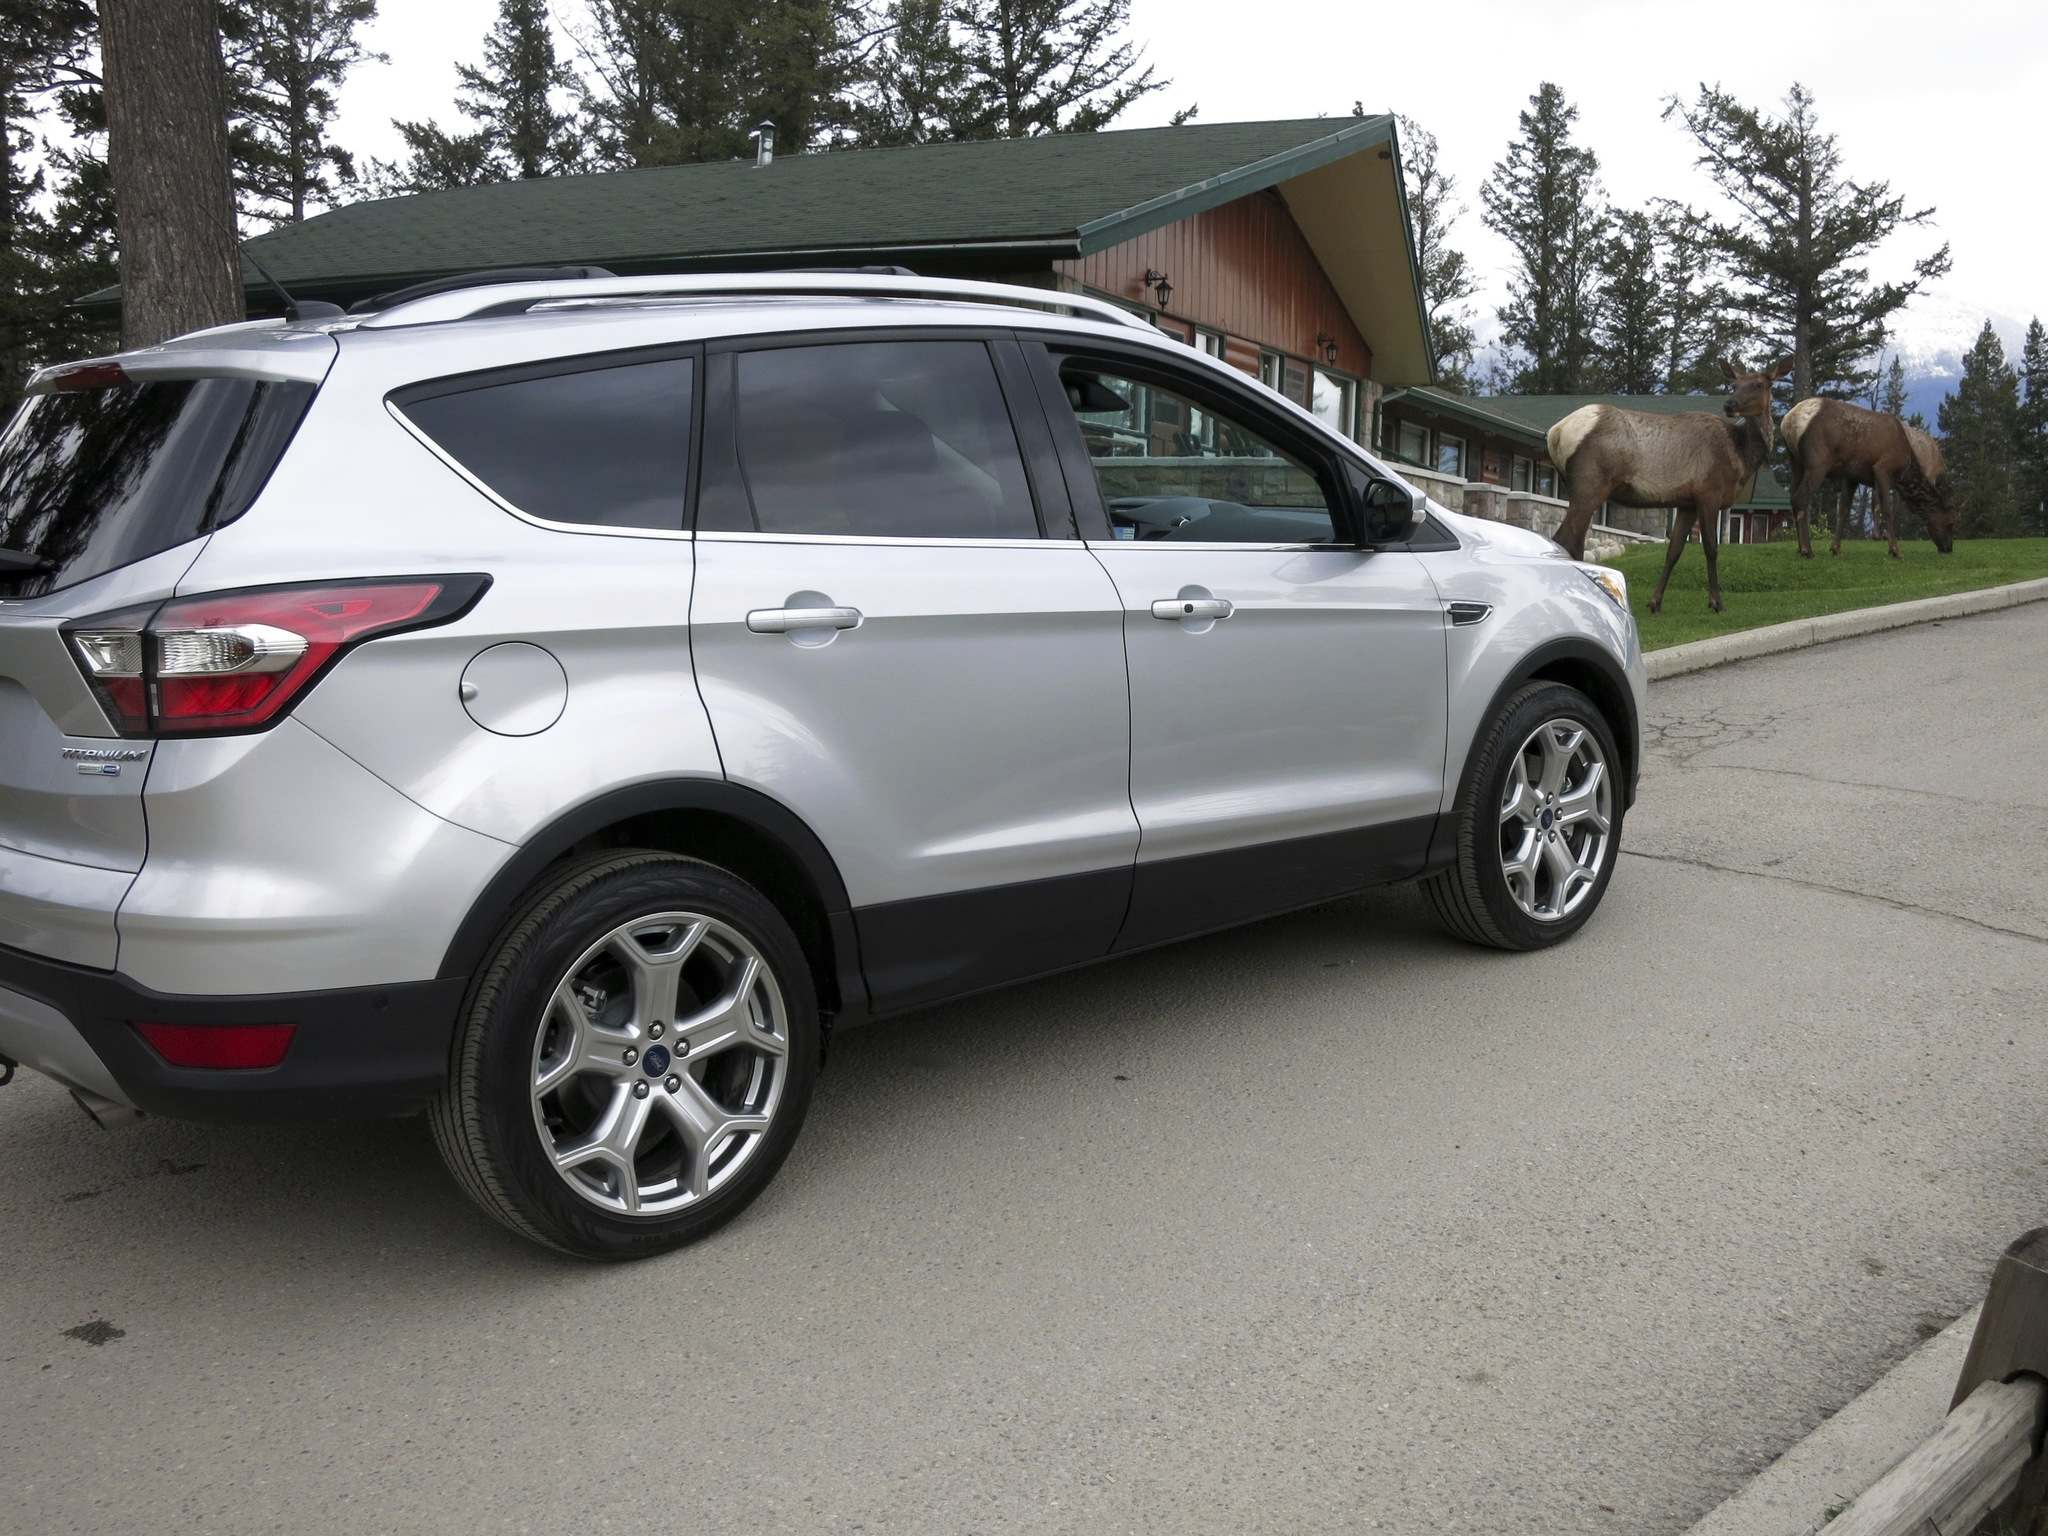 KELLY TAYLOR / WINNIPEG FREE PRESSElk munching on green grass near Jasper aren't the least bit interested in the 2017 Ford Escape, but reviewer Kelly Taylor thinks the new model is a winner.